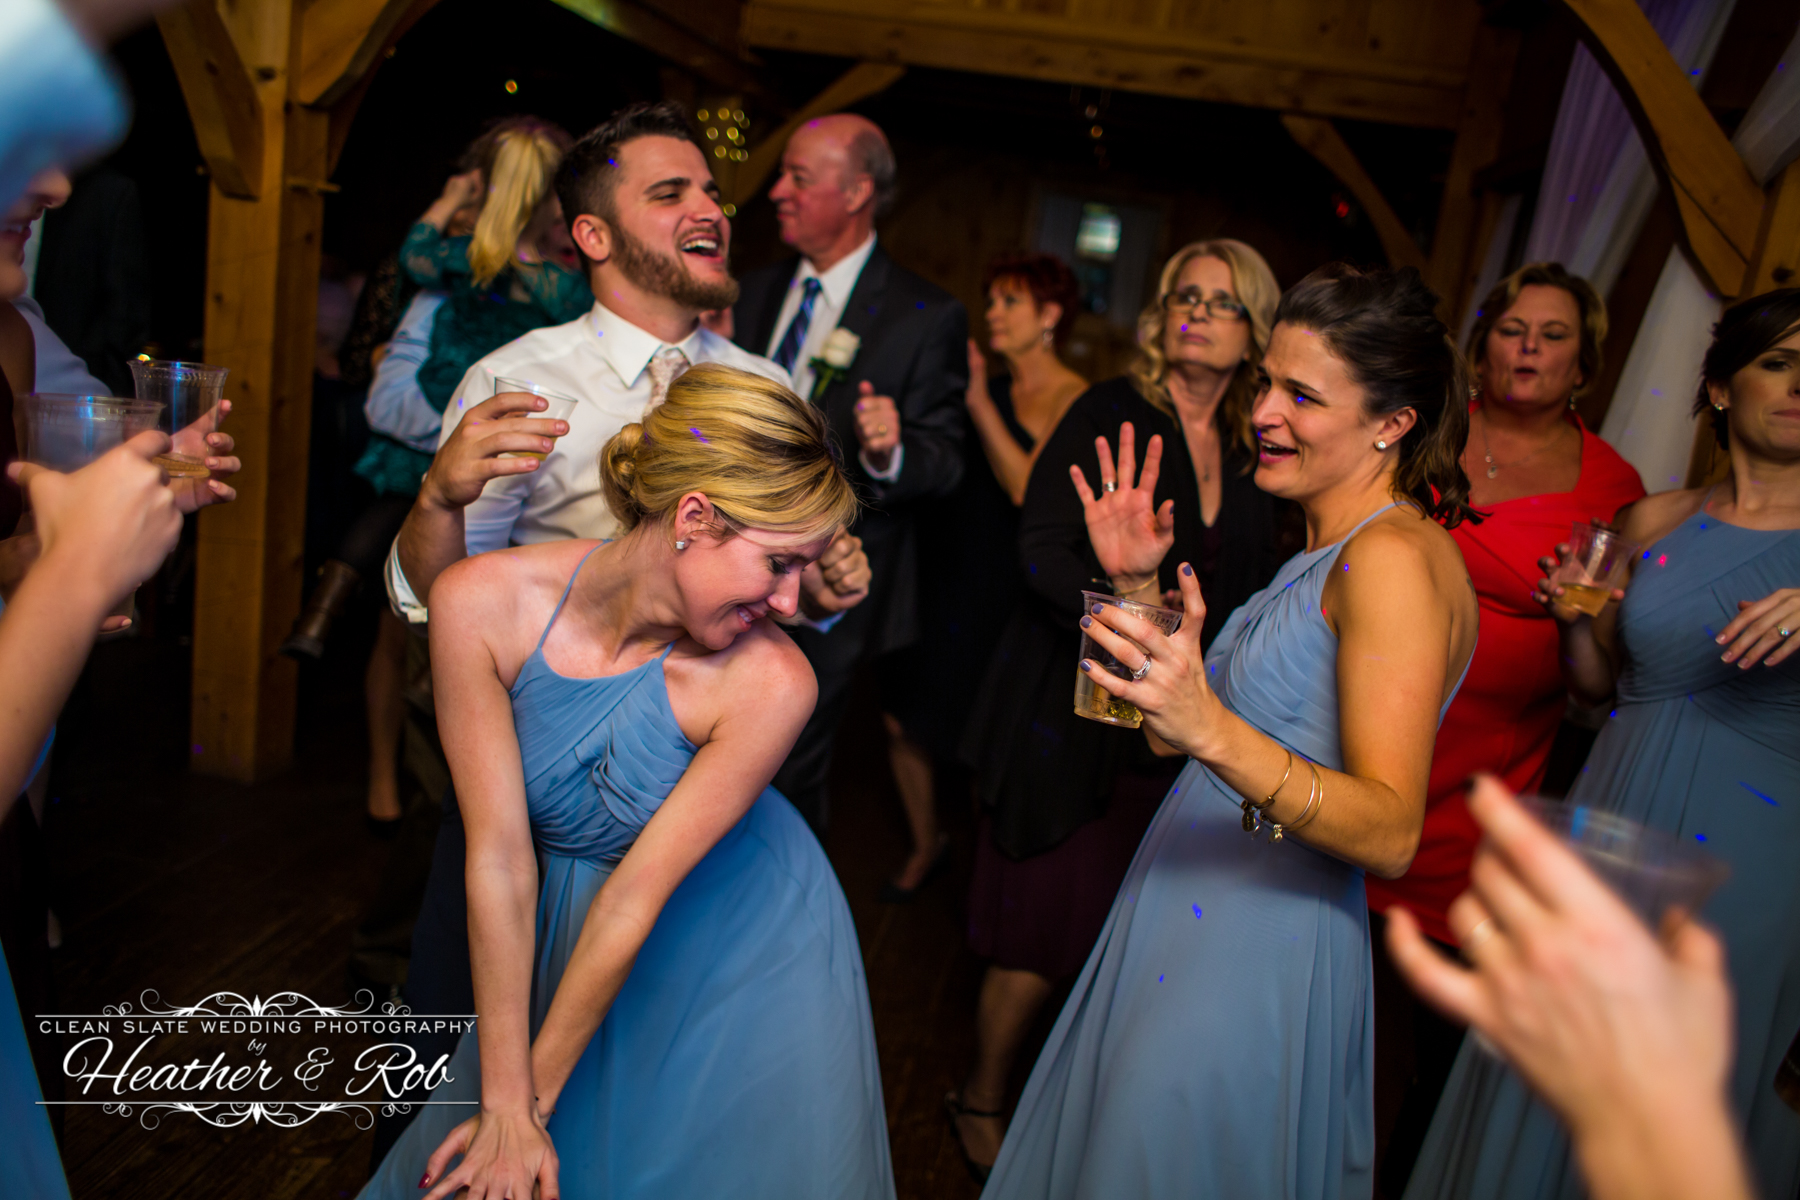 bridesmaid in blue dress dancing bent over at wedding